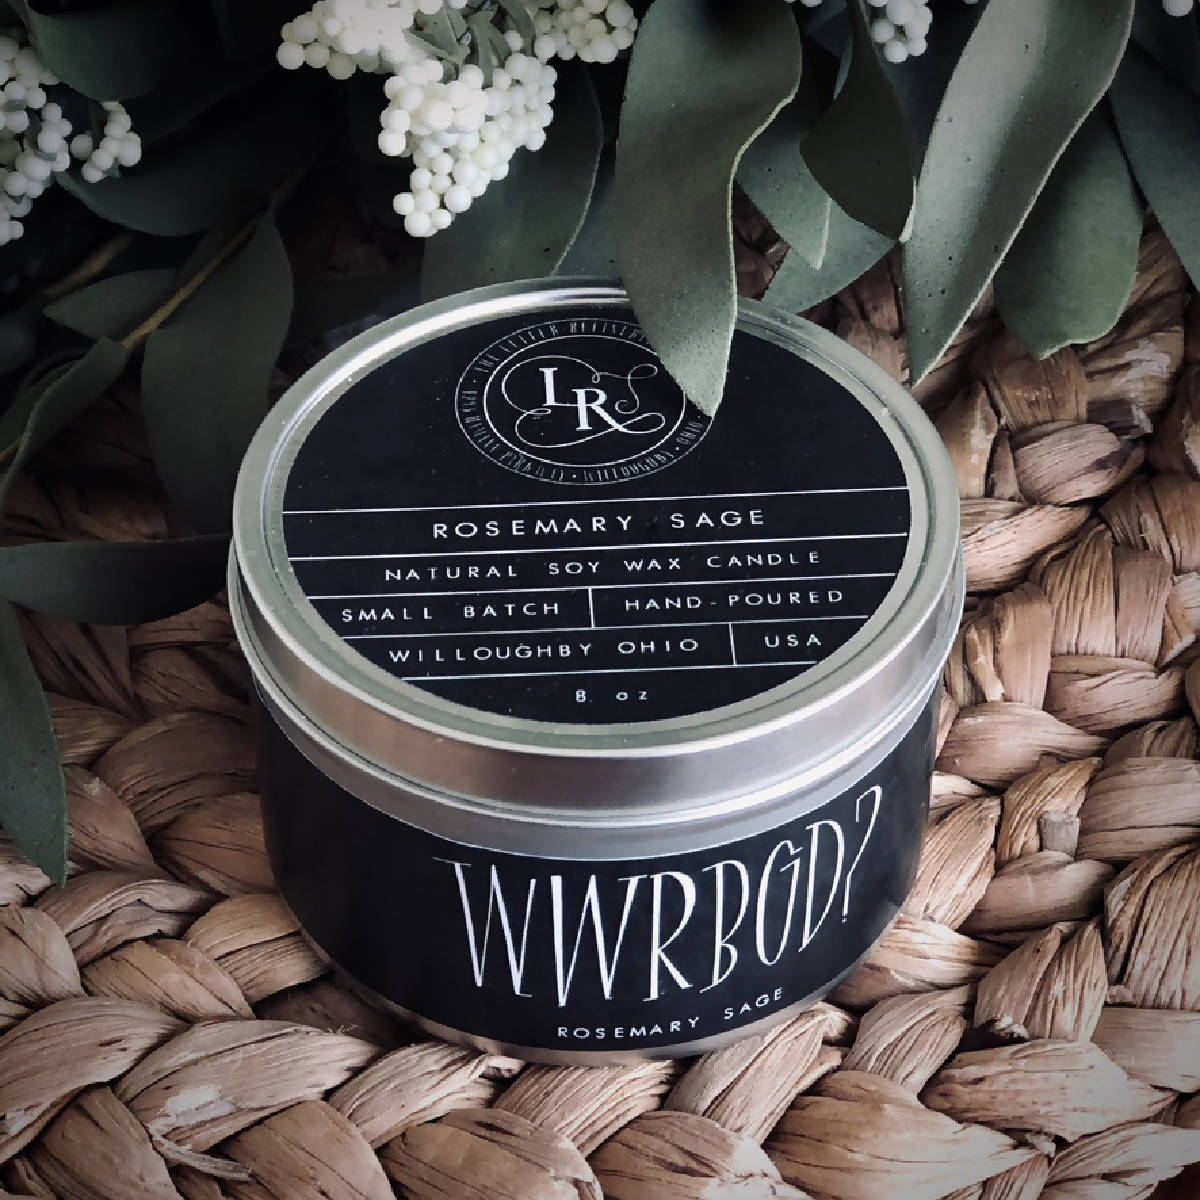 WWRBGD Rosemary Sage Natural Soy Candle